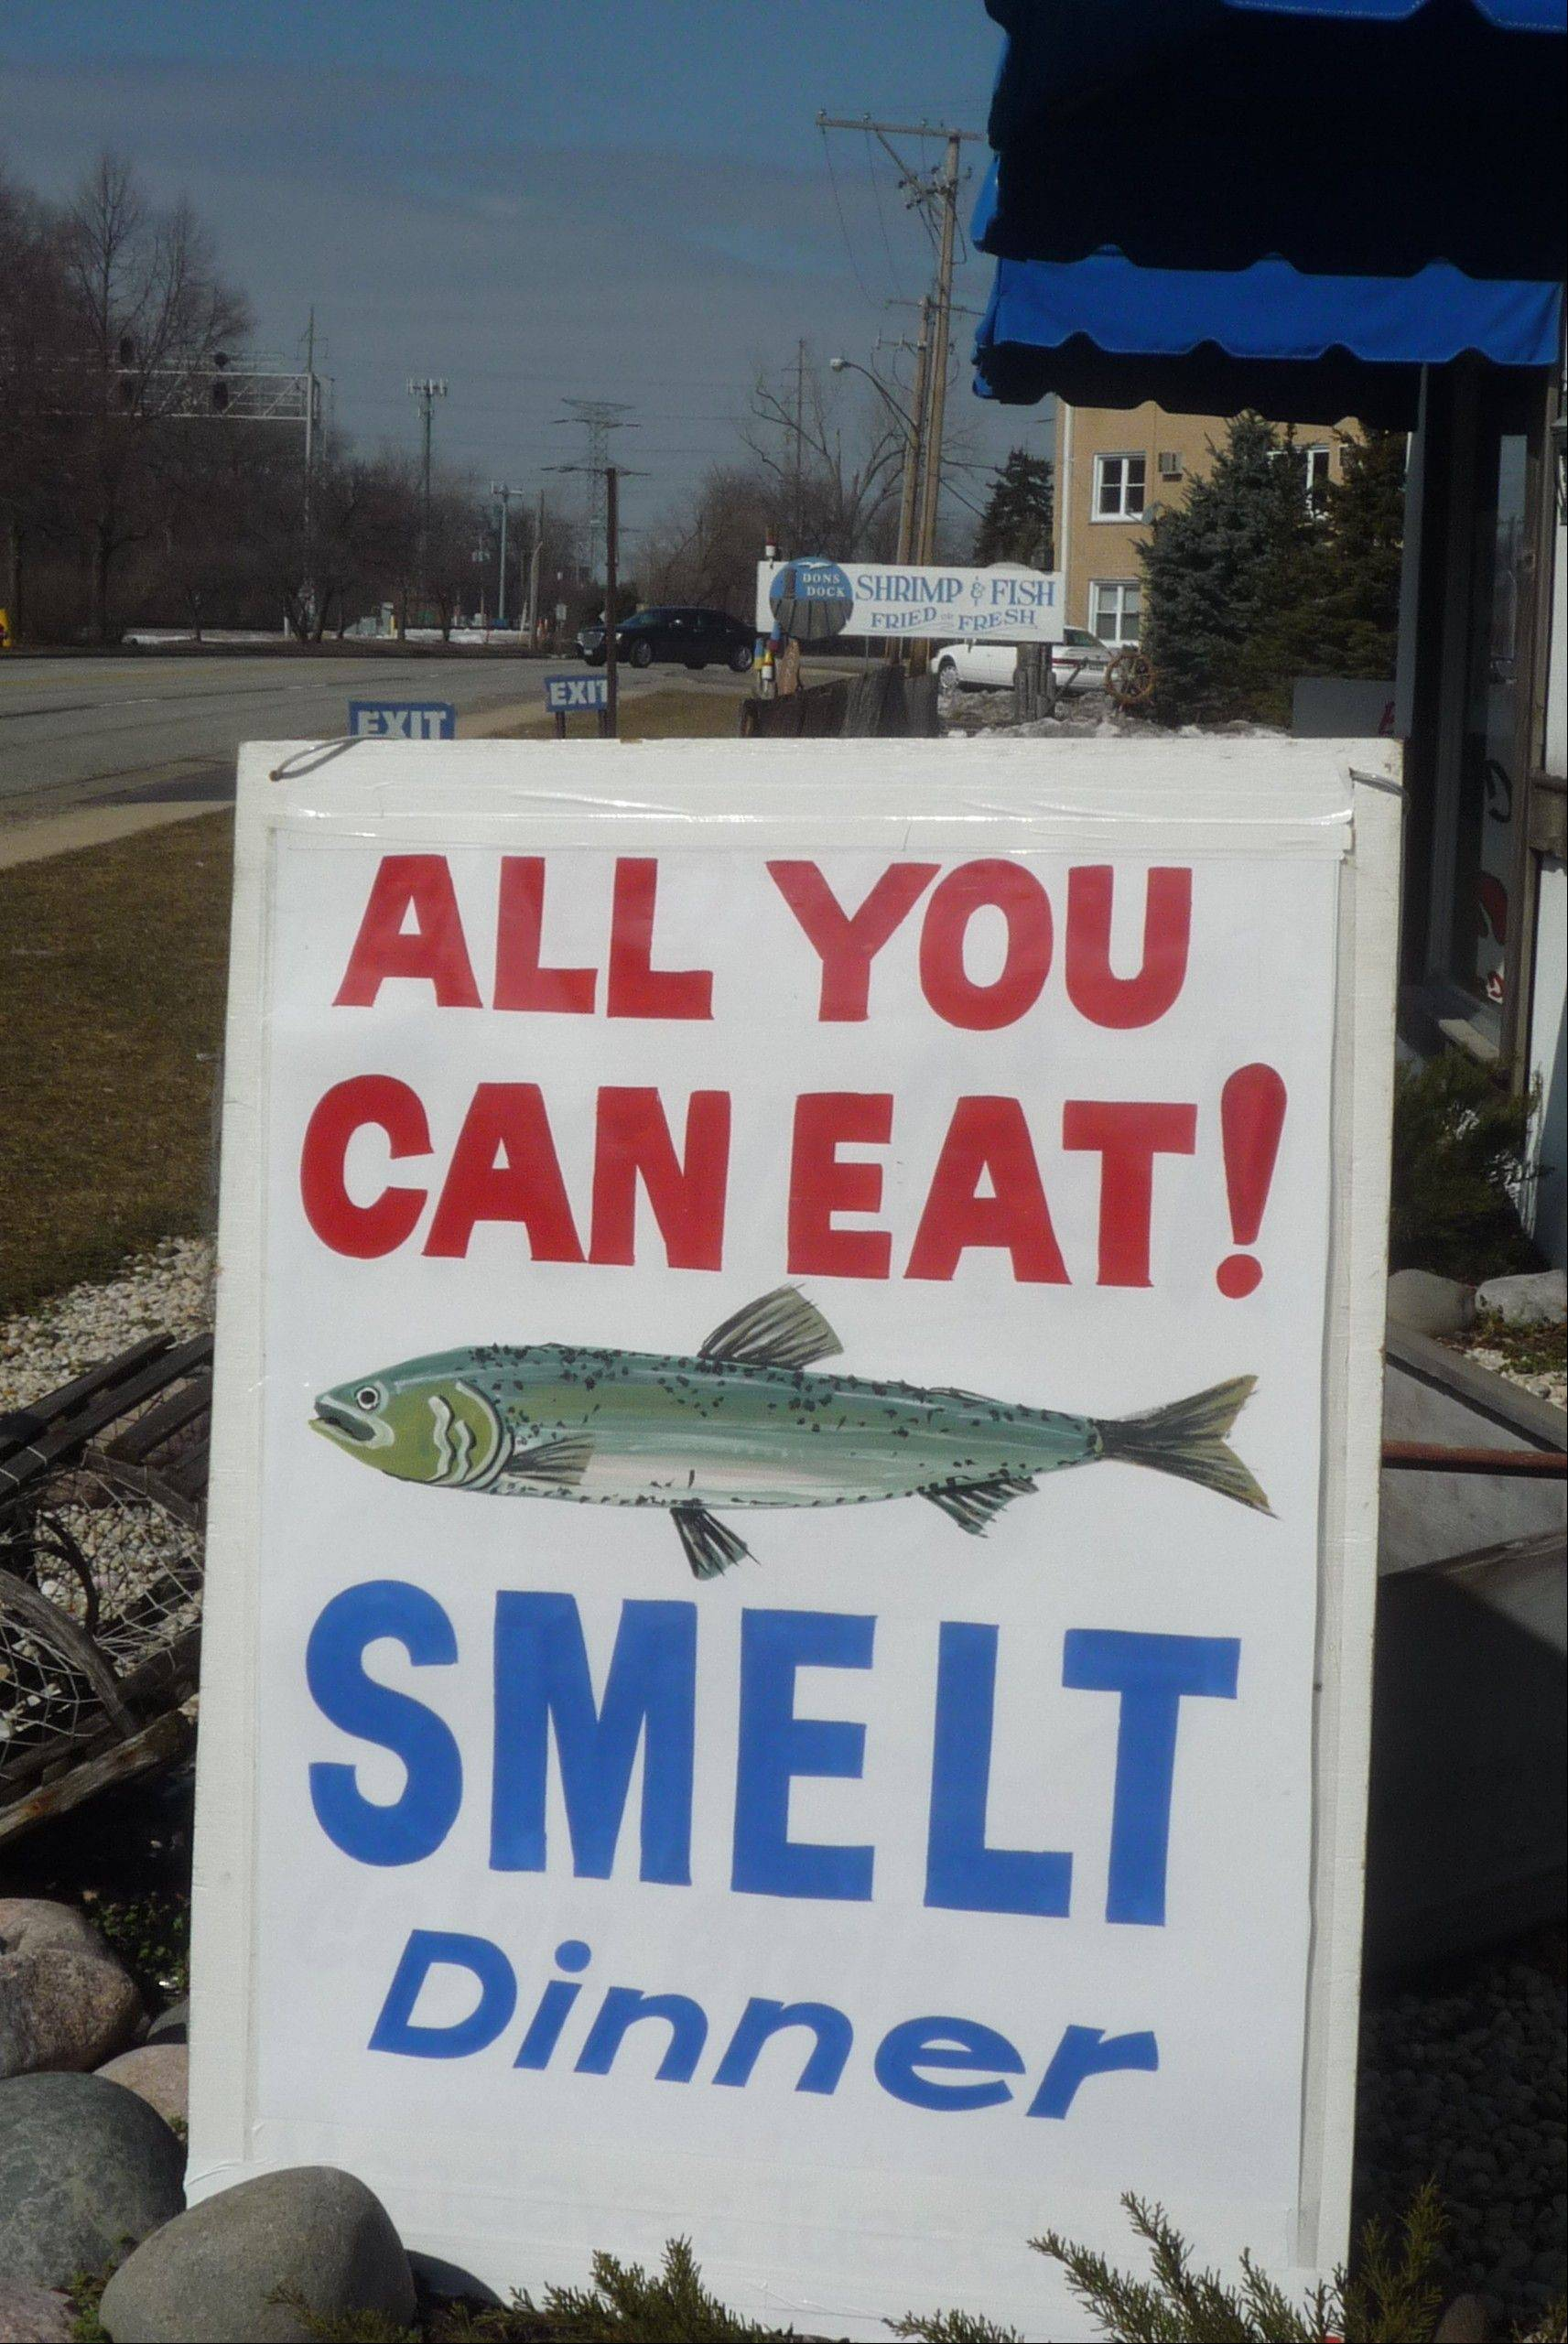 Depending on the customer, all the smelt you can eat might be zero or dozens. The little fish, fried with its scales and bones, turns off some diners but is a popular menu item every spring at Don's Dock seafood restaurant and market in Des Plaines.